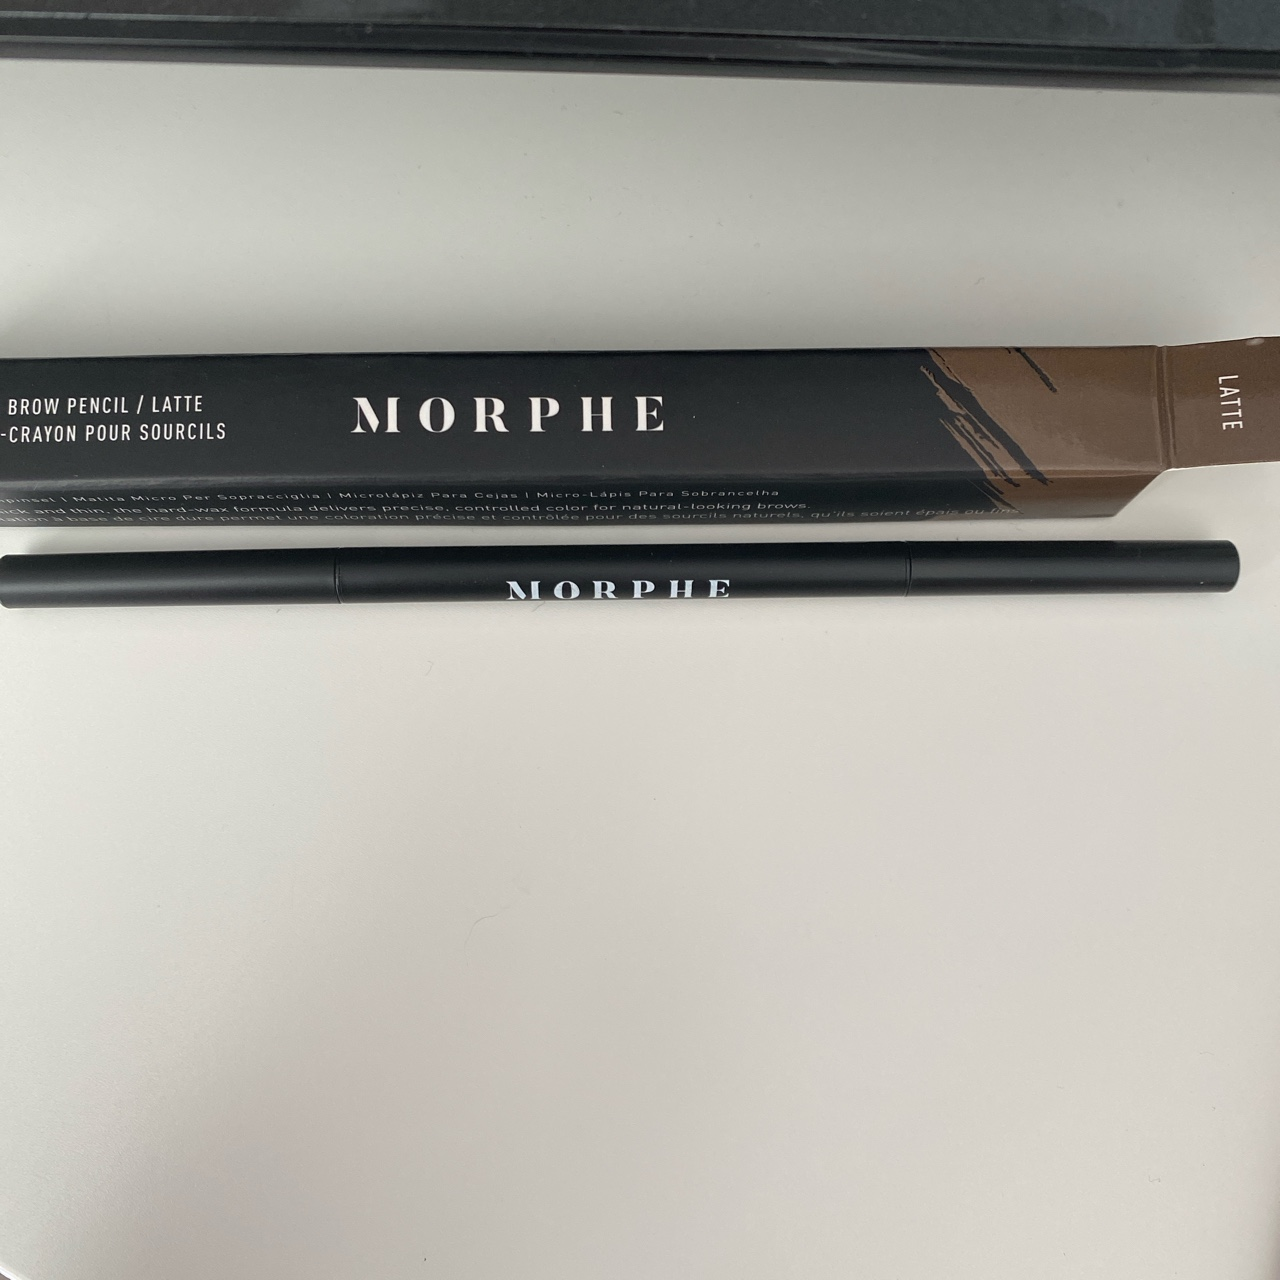 Morphe Micro Brow Pencil In Shade Latte Brand New Depop It doesn't feel waxy and it has just. morphe micro brow pencil in shade latte